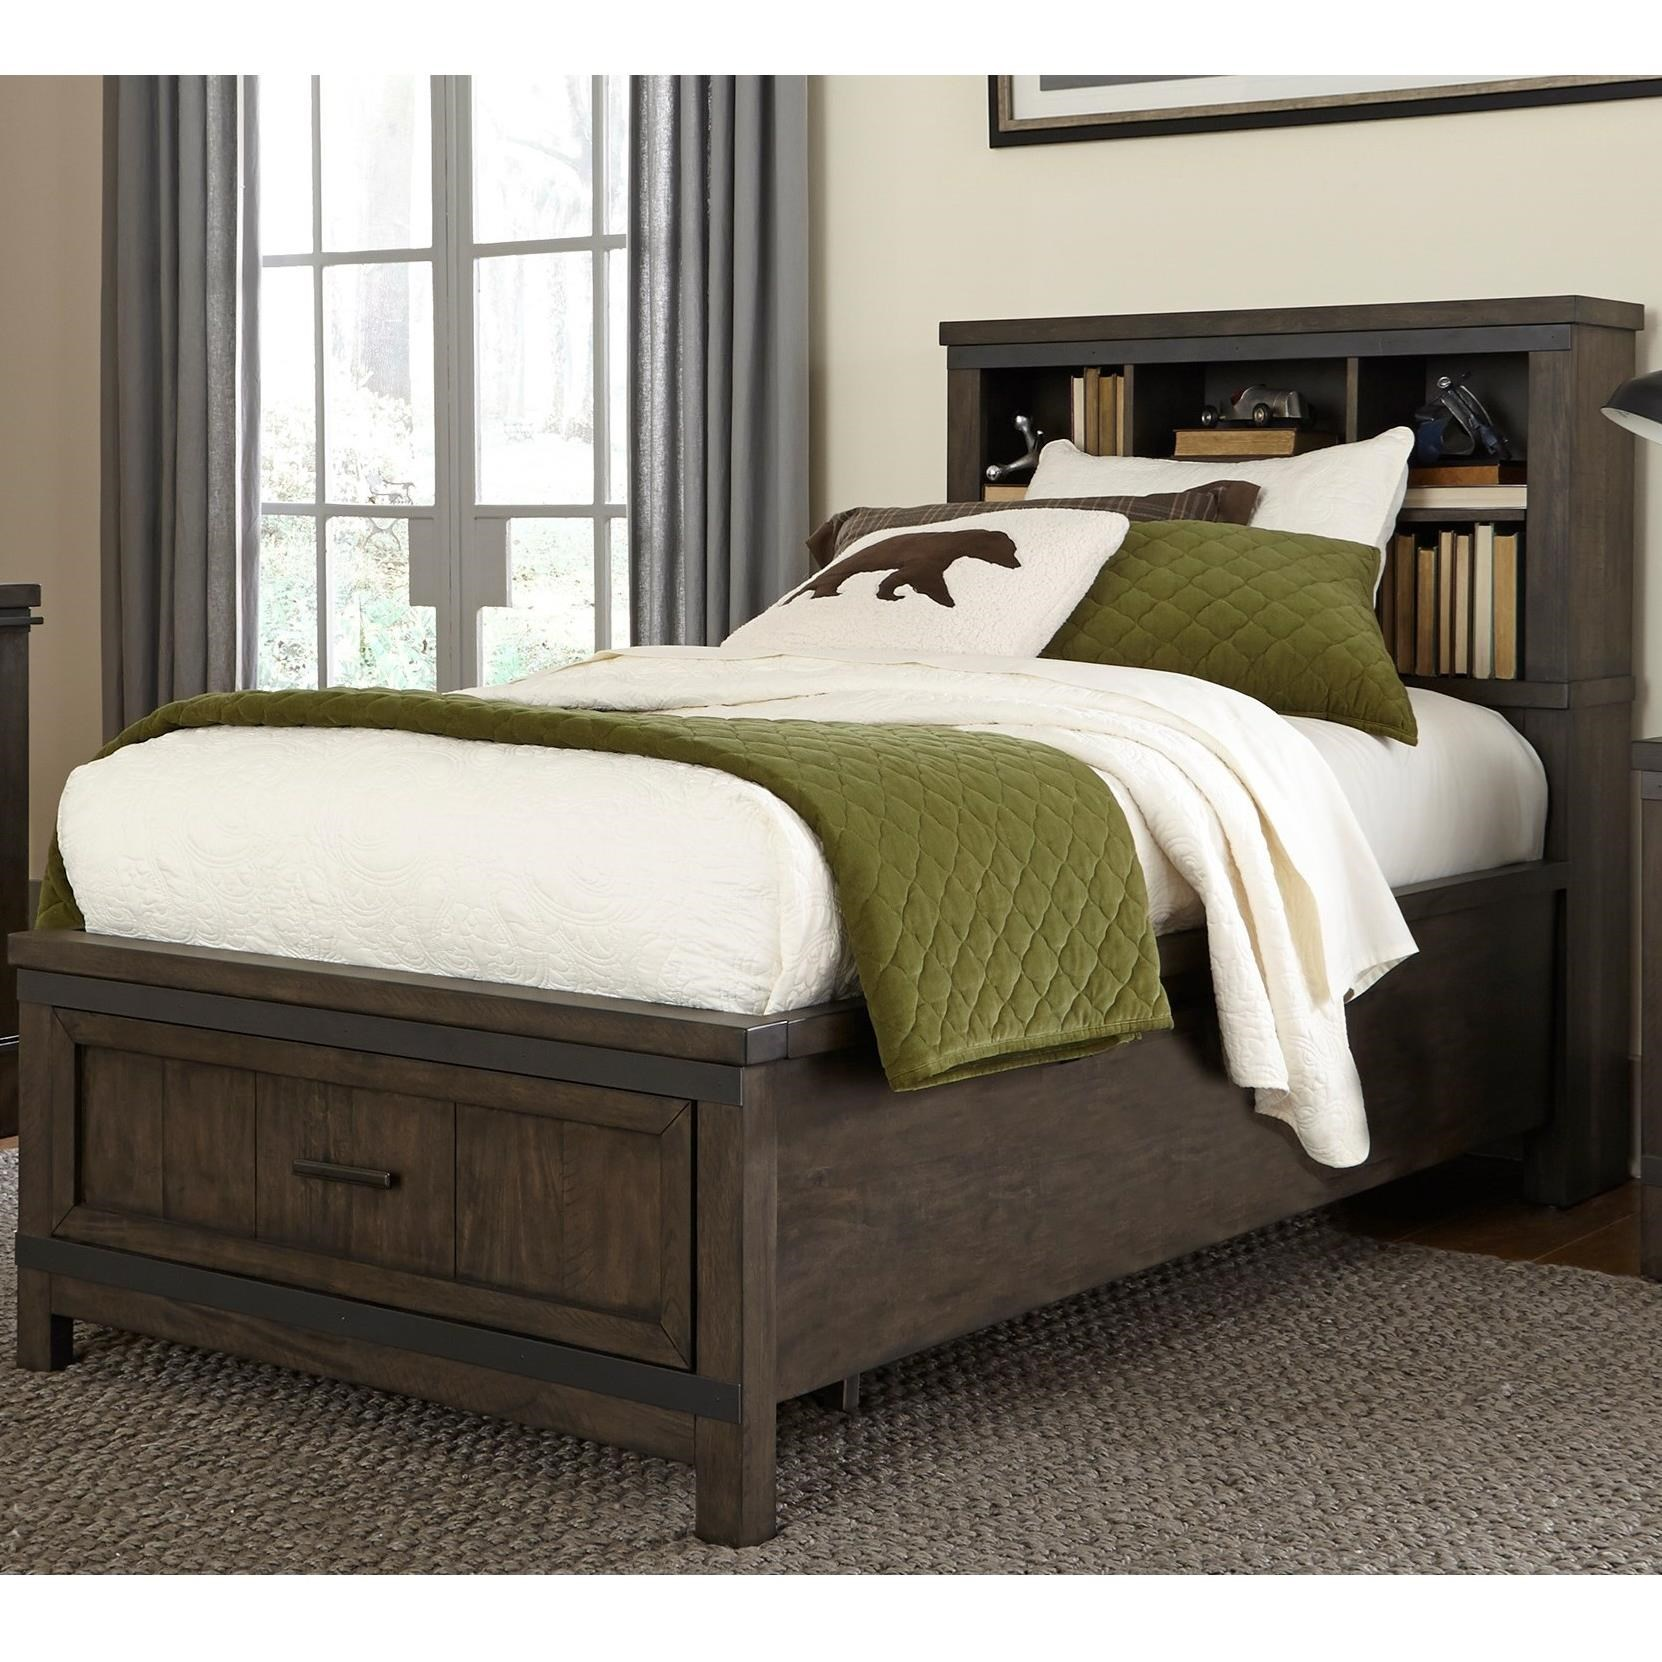 Thornwood Hills Full Bookcase Bed by Liberty Furniture at VanDrie Home Furnishings